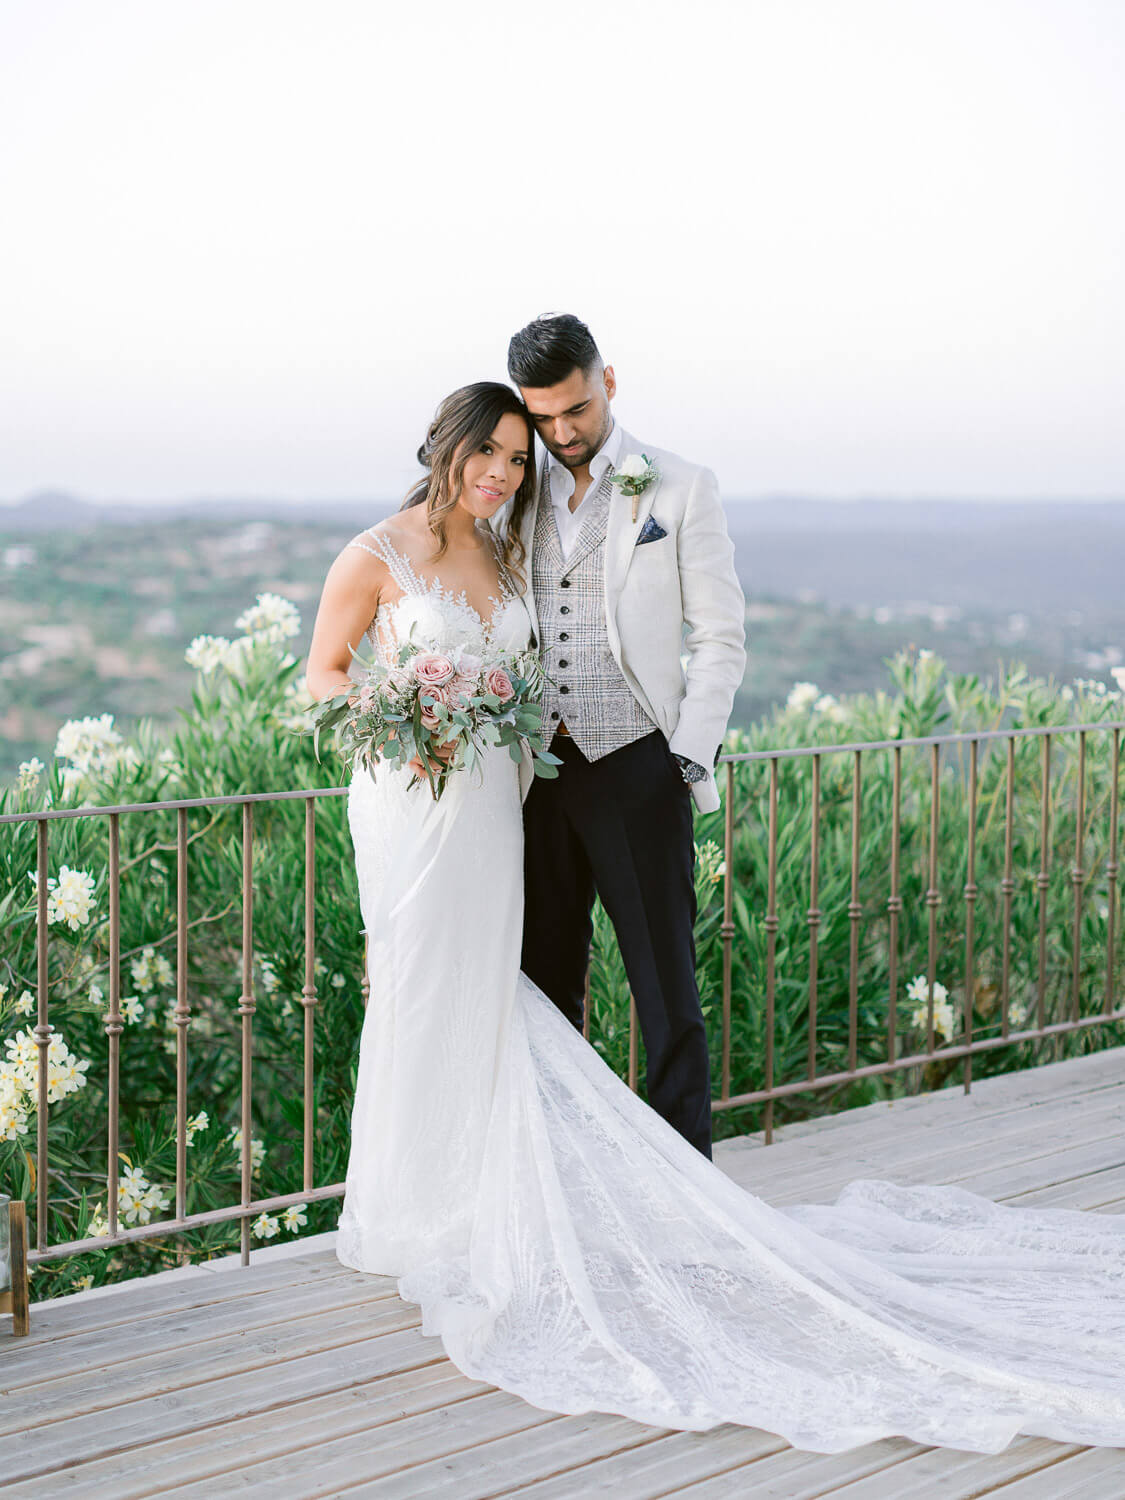 bride and groom's sweet portrait at a destination wedding in the Algarve by Portugal Wedding Photographer